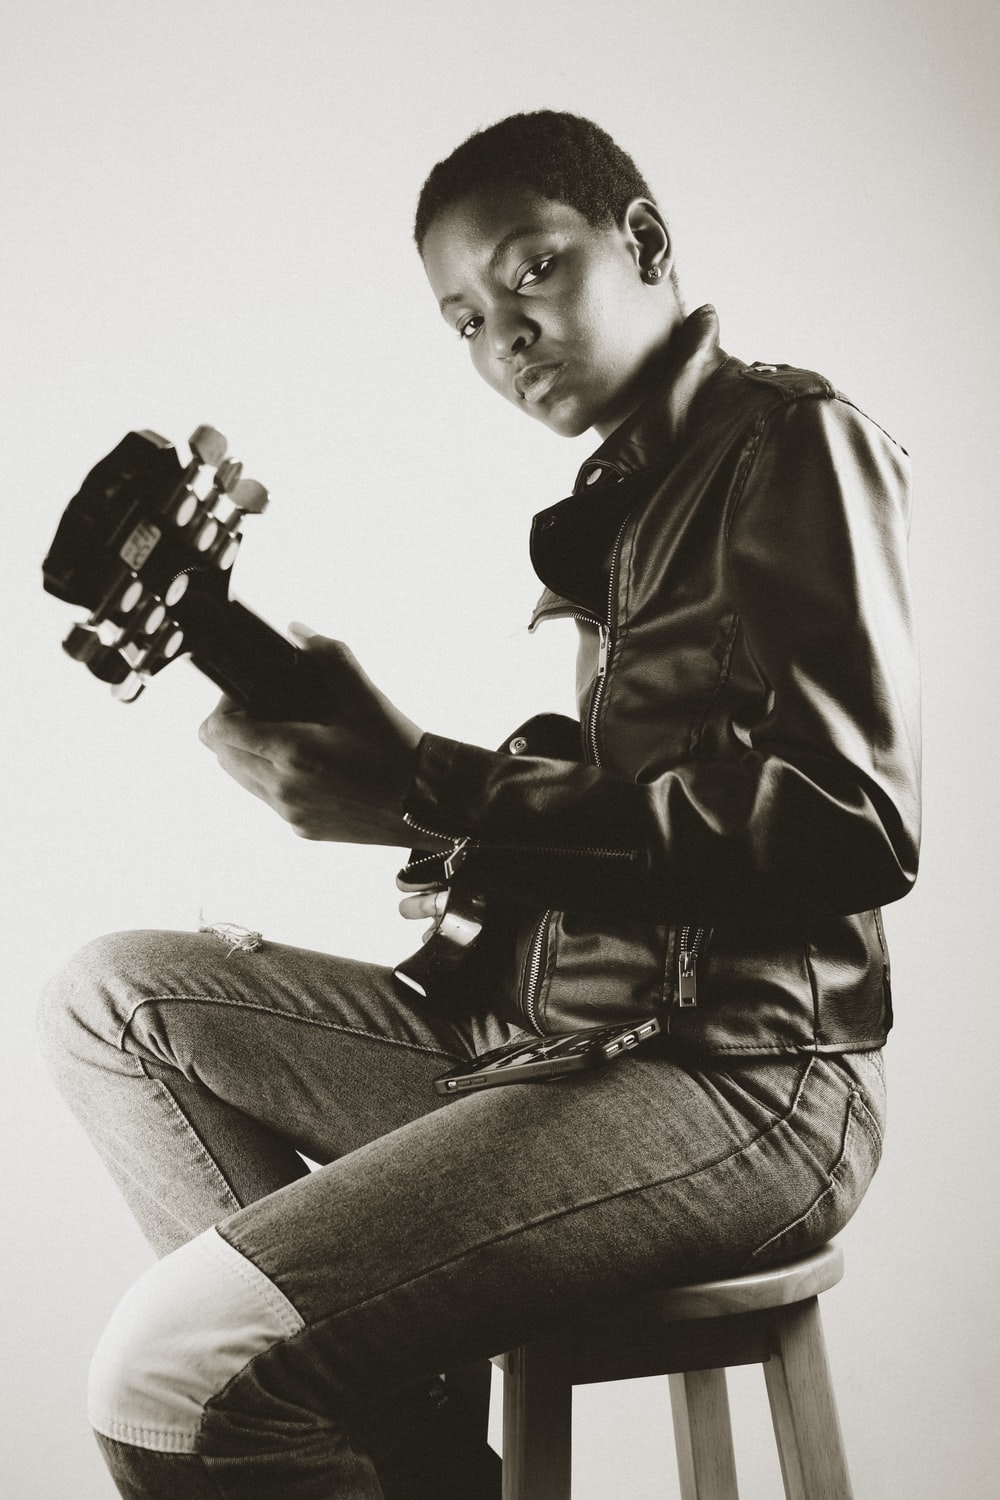 man in black leather jacket and gray denim jeans holding black and white game controller